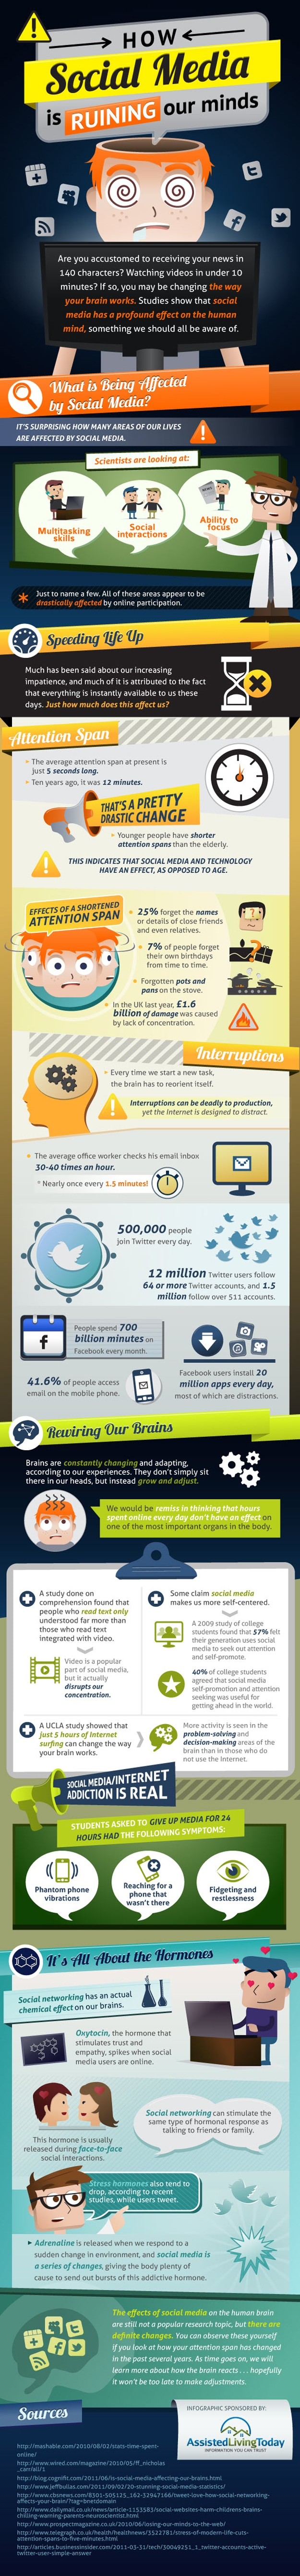 How Social Media Is Ruining Our Minds [Infographic]